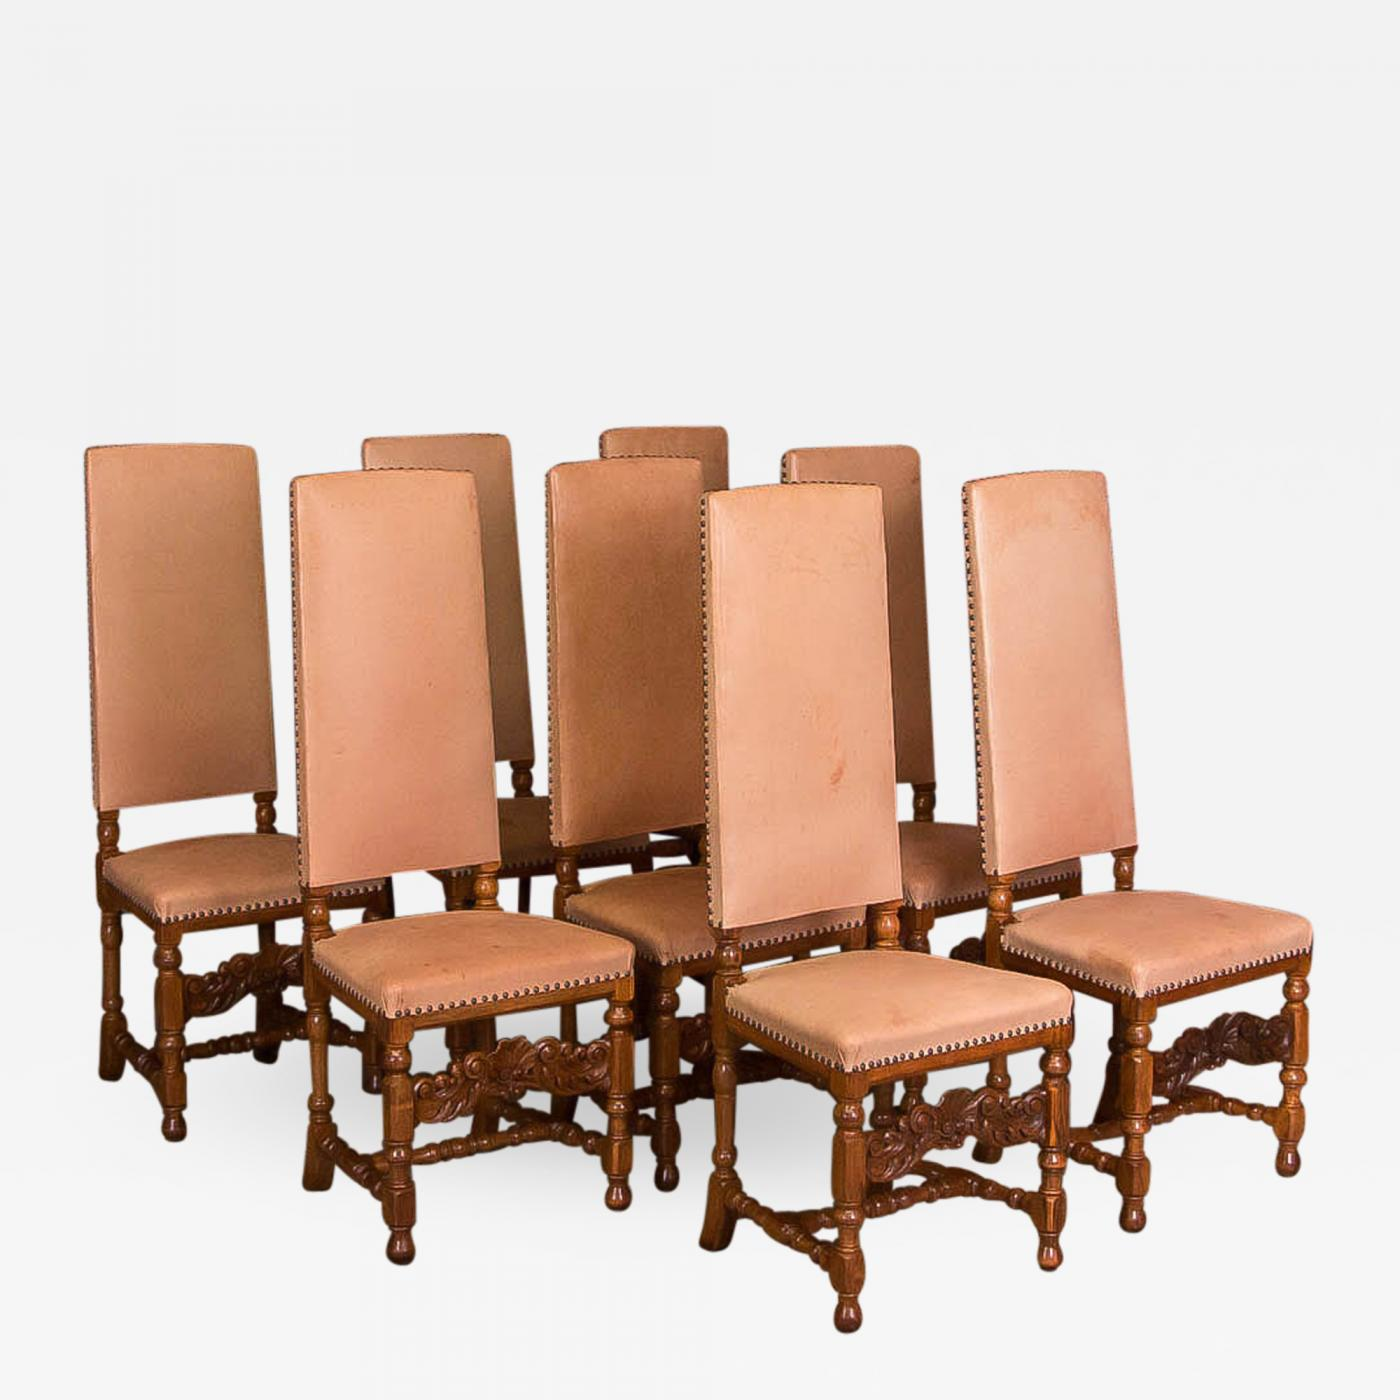 Awesome Set Of 8 Leather Upholstered High Back Oak Dining Chairs Creativecarmelina Interior Chair Design Creativecarmelinacom